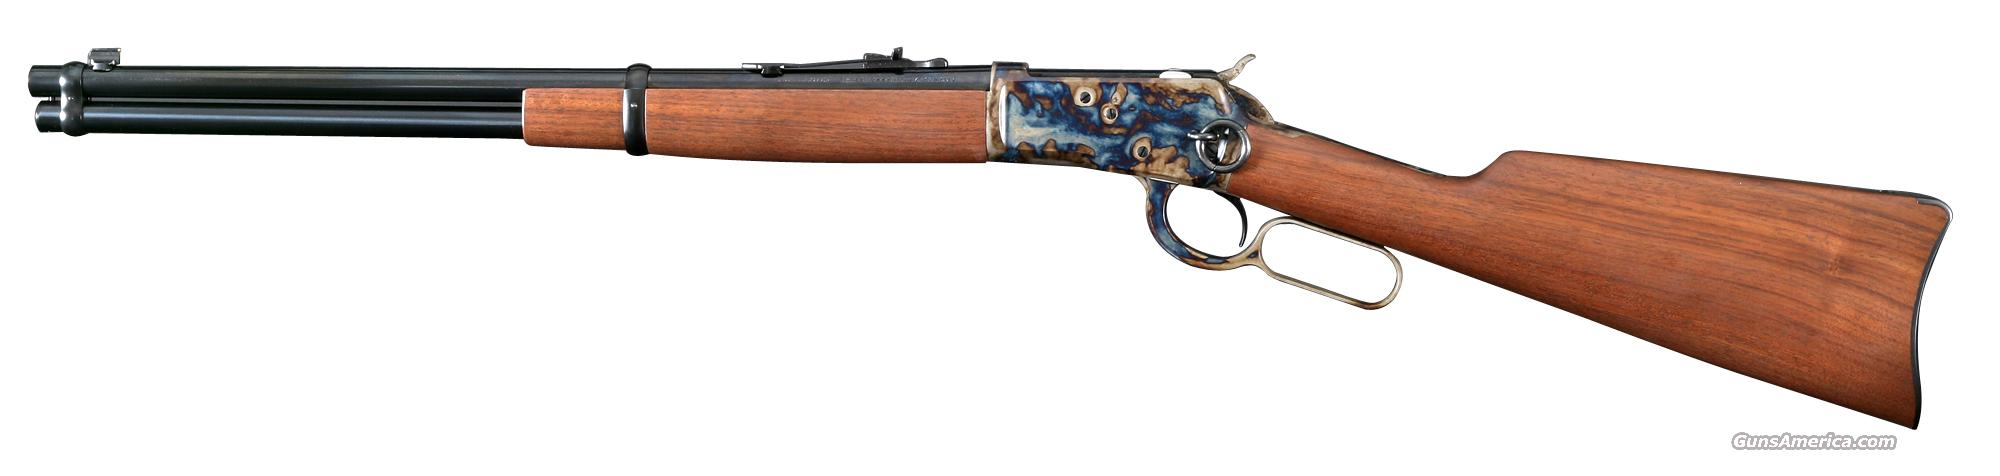 USRAC/Winchester 1892 SRC by Turnbull  Guns > Rifles > Winchester Rifles - Modern Lever > Other Lever > Post-64